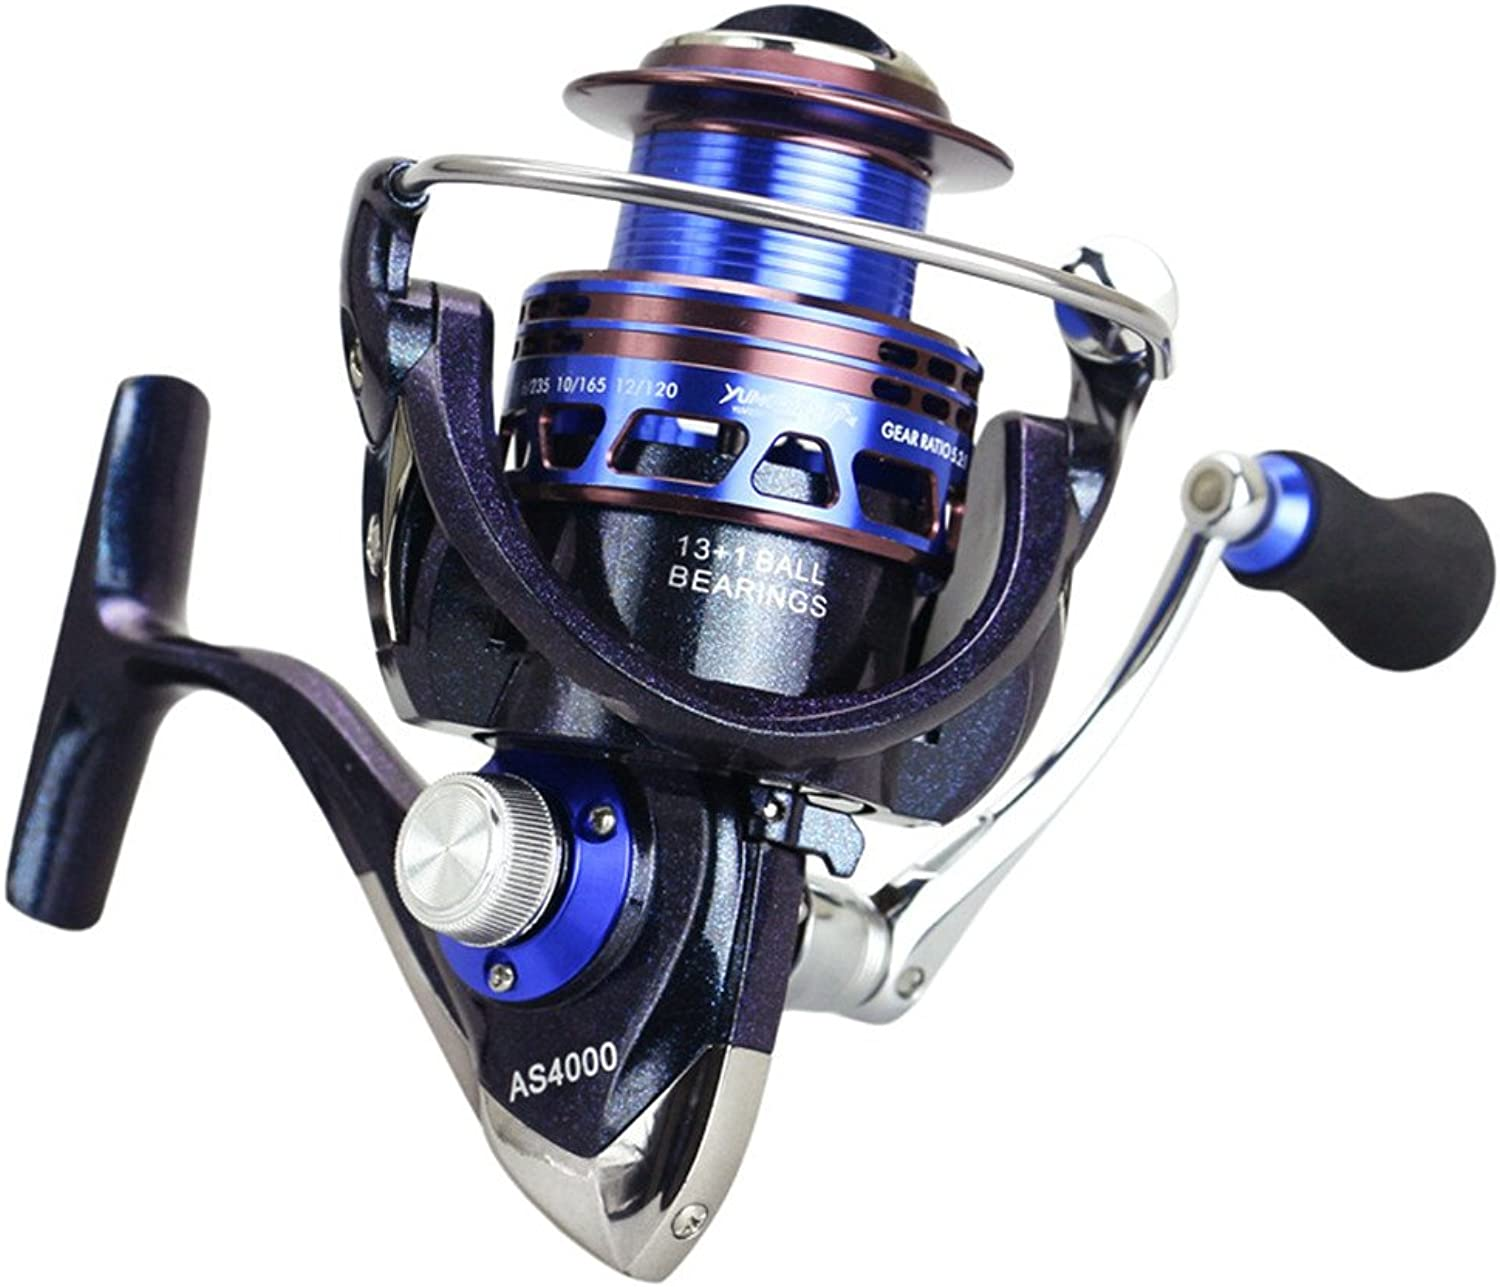 Smooth Spinning Reel Fishing Reel Hand Wheel Spinning Fishing Reel Baitrunner Reel 13+1 Bearings Left Right Interchangeable Handle for Saltwater Freshwater Fishing Gear Ratio 5.2 1 with Double Drag Br